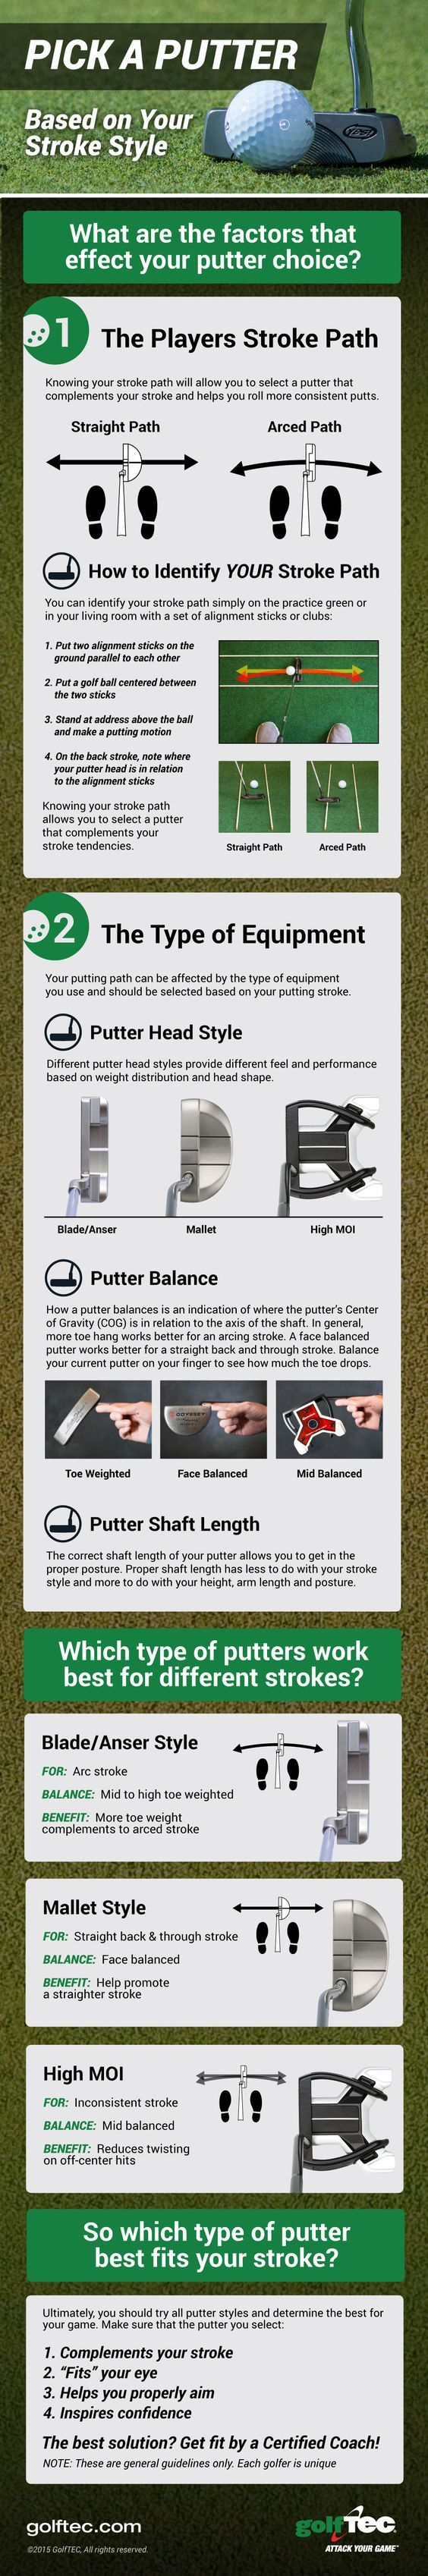 Getting fit for the right putter for your stroke could be an easy way to save shots on the green. Here is a quick way to know what might work best for your stroke.